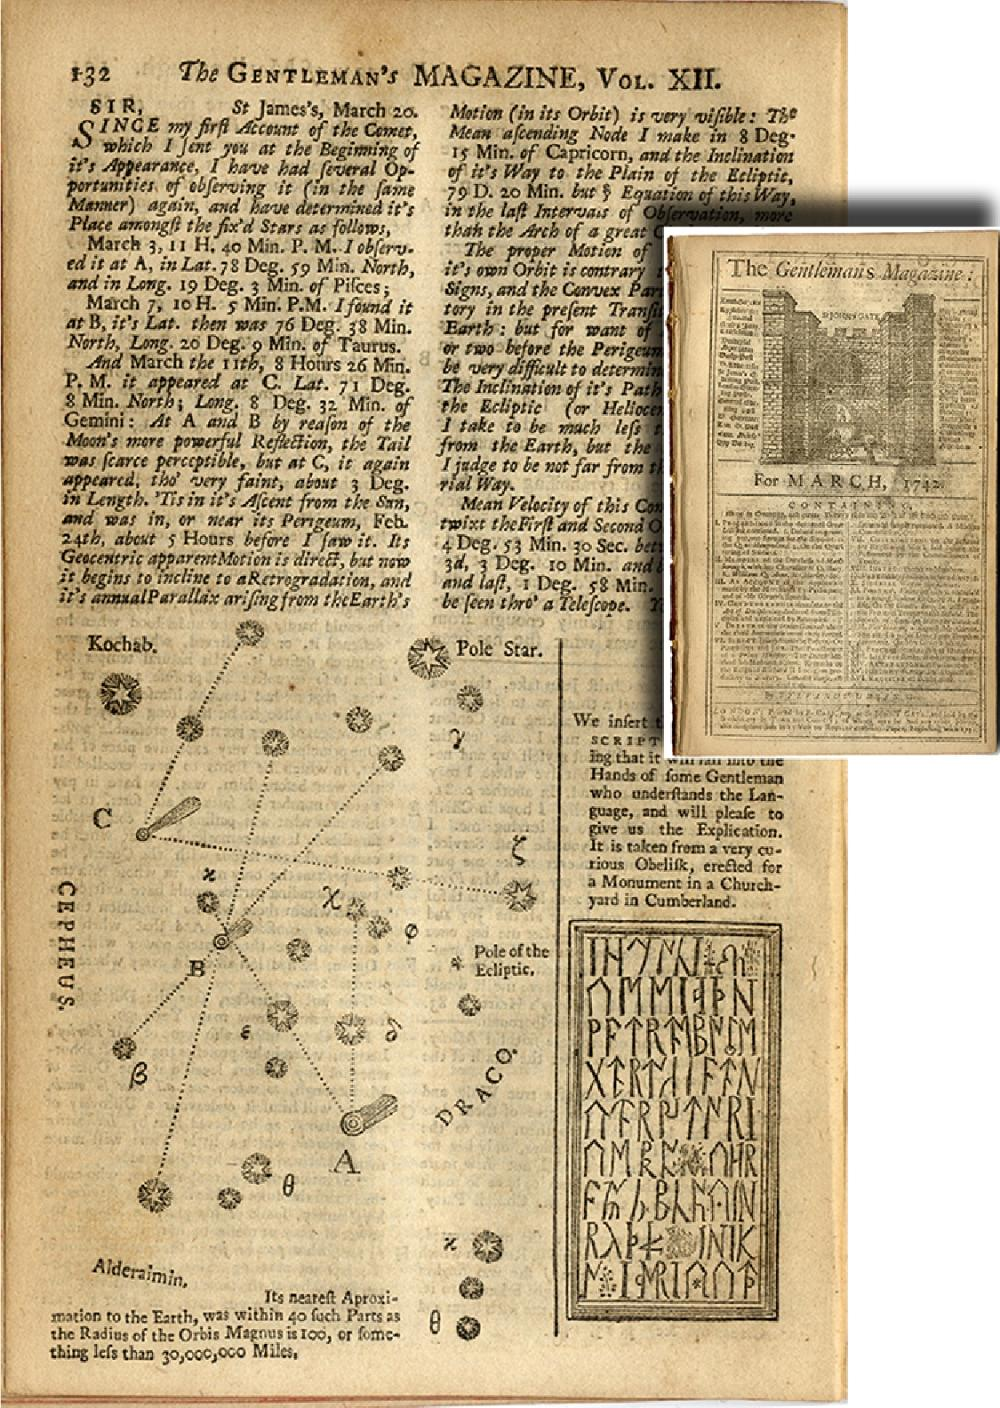 1742 - DEFINING THE POSITION OF THE COMET